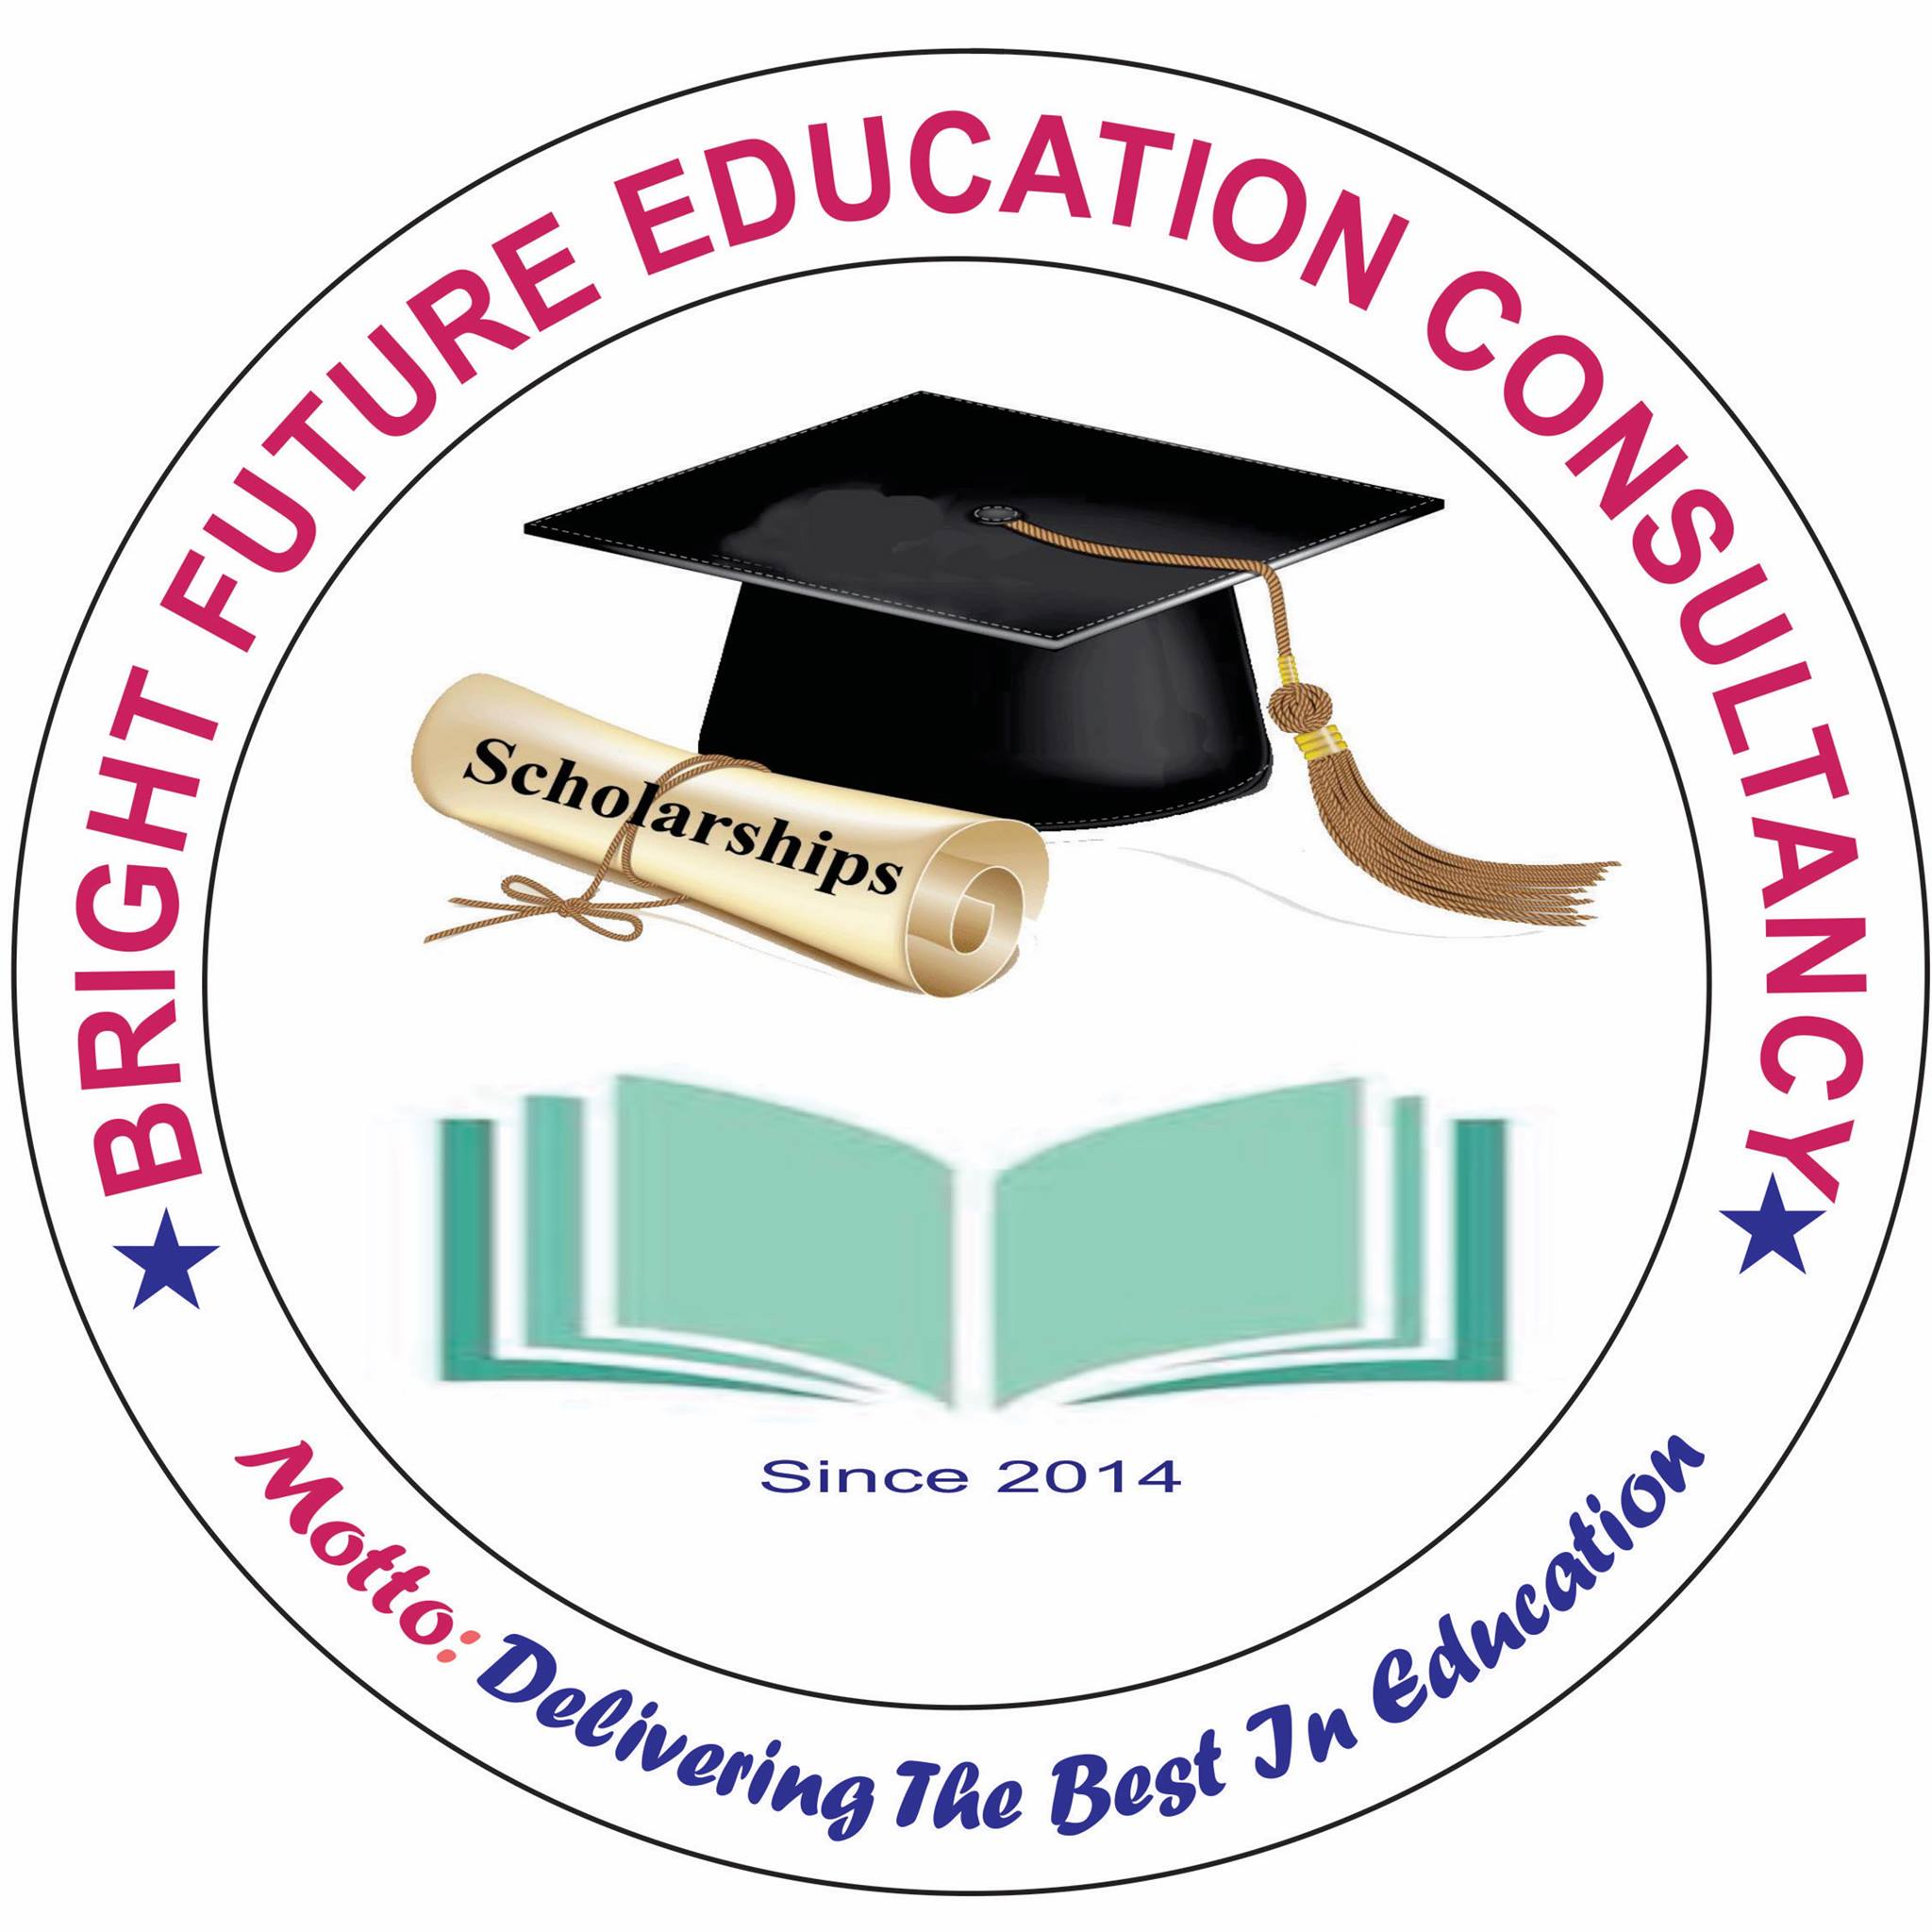 Tianjin Bright Future Education Consulting Co., Ltd